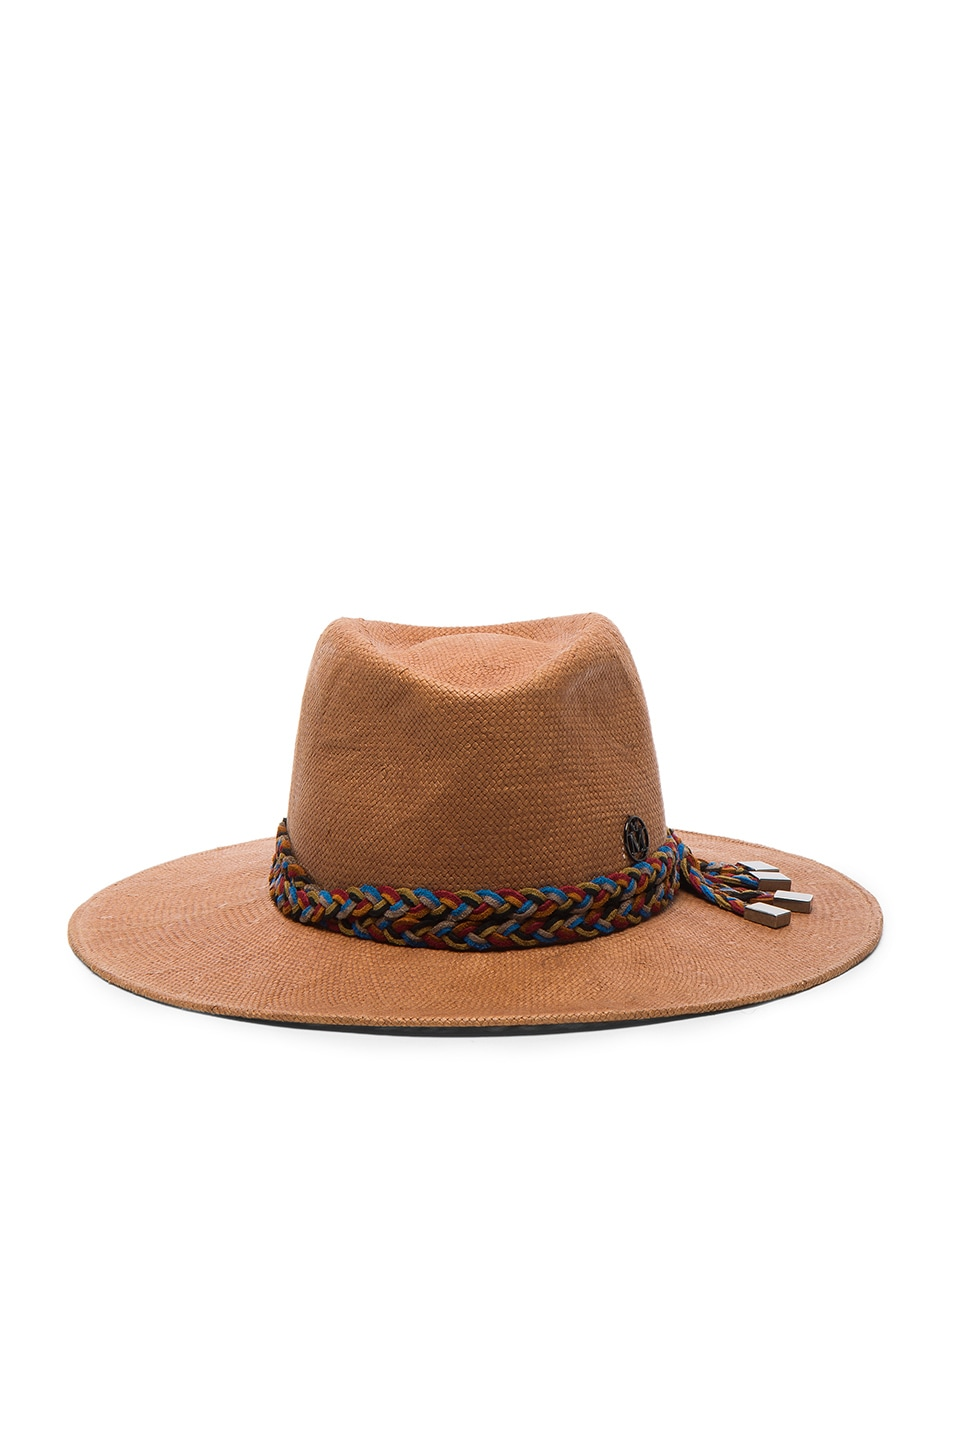 Image 1 of Maison Michel Pierre Hat in Earthy Beige